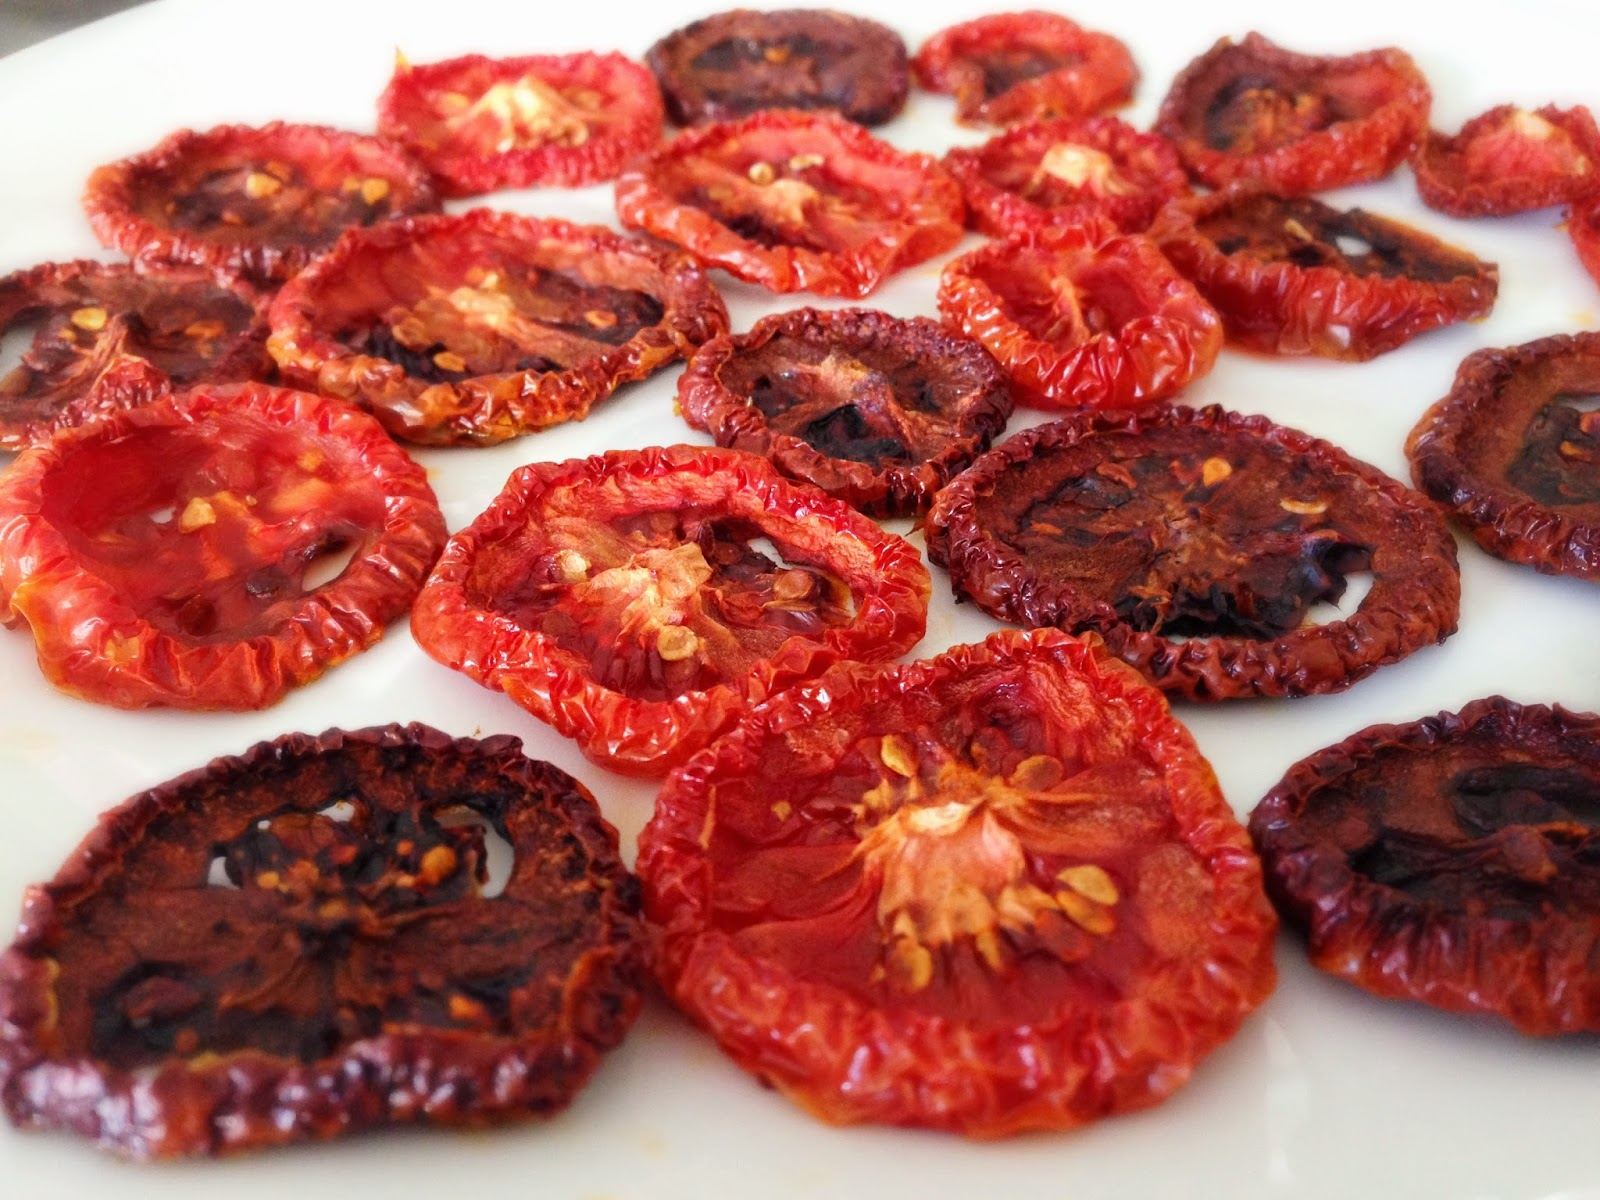 Kale With Love: Homemade Sun-dried Tomatoes